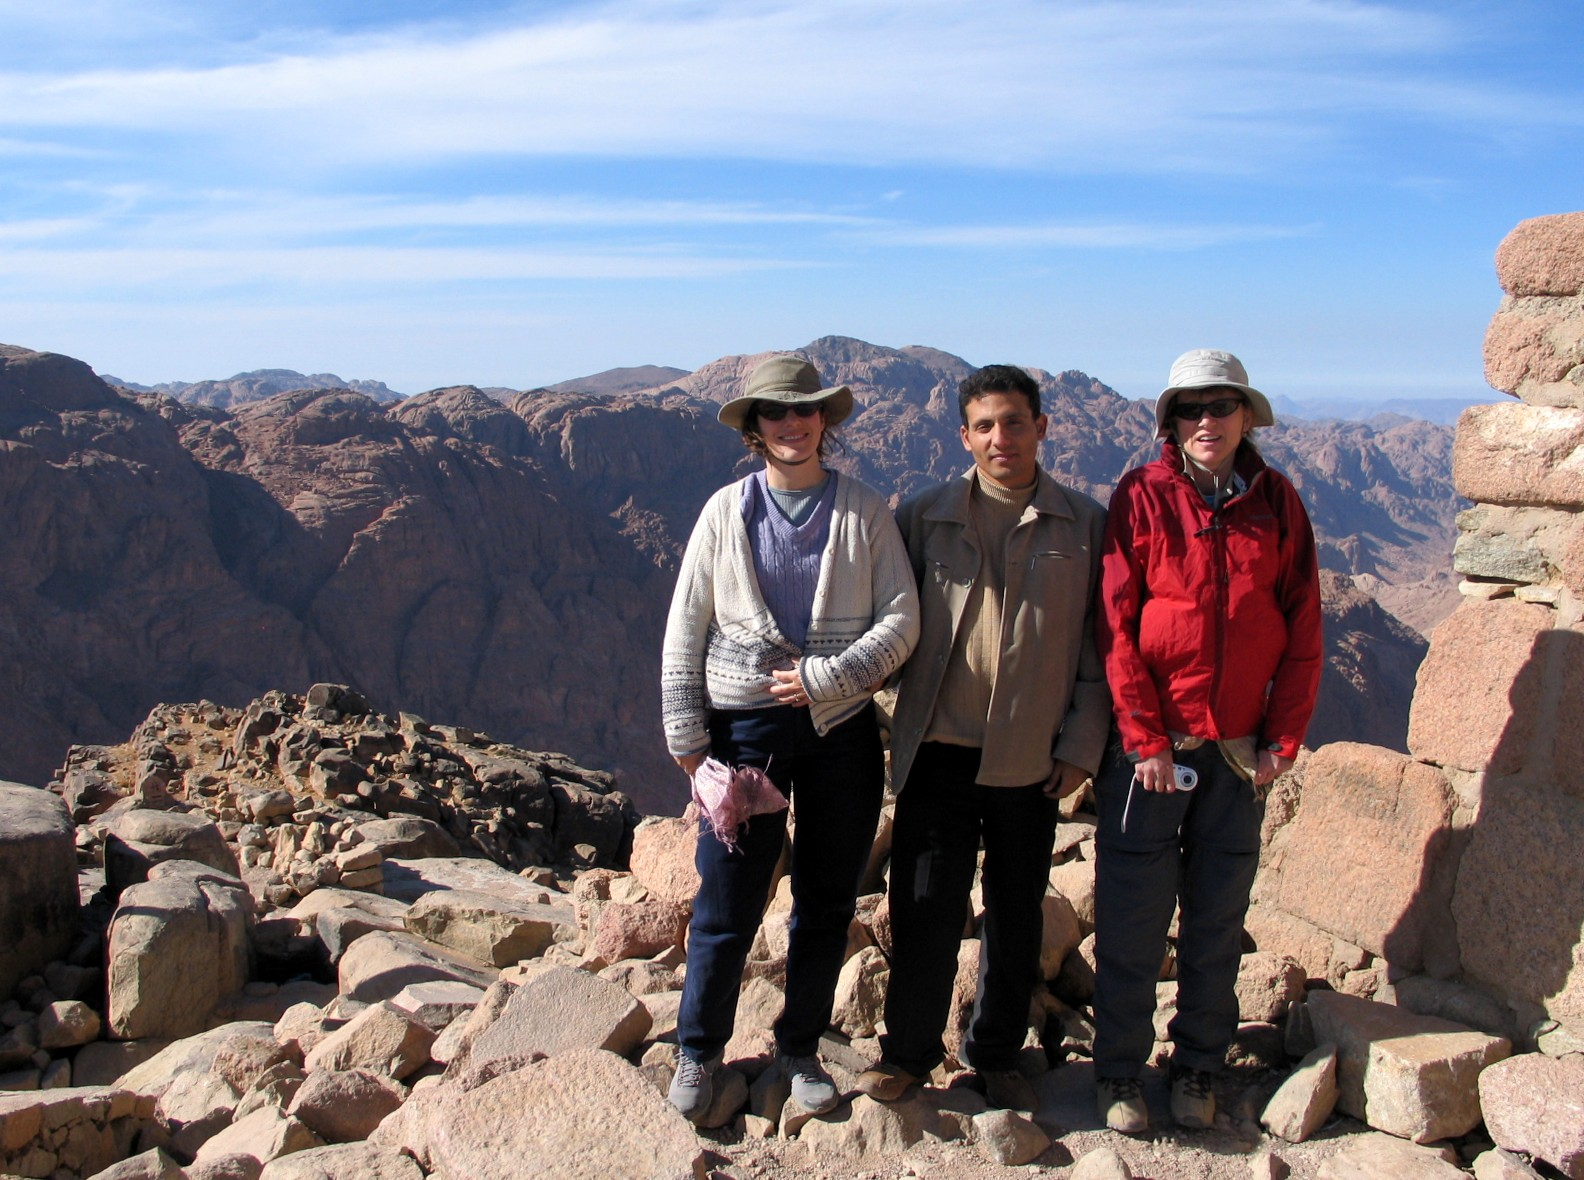 The Hikemasters' Trail Descriptions: Mount Sinai Summit Loop